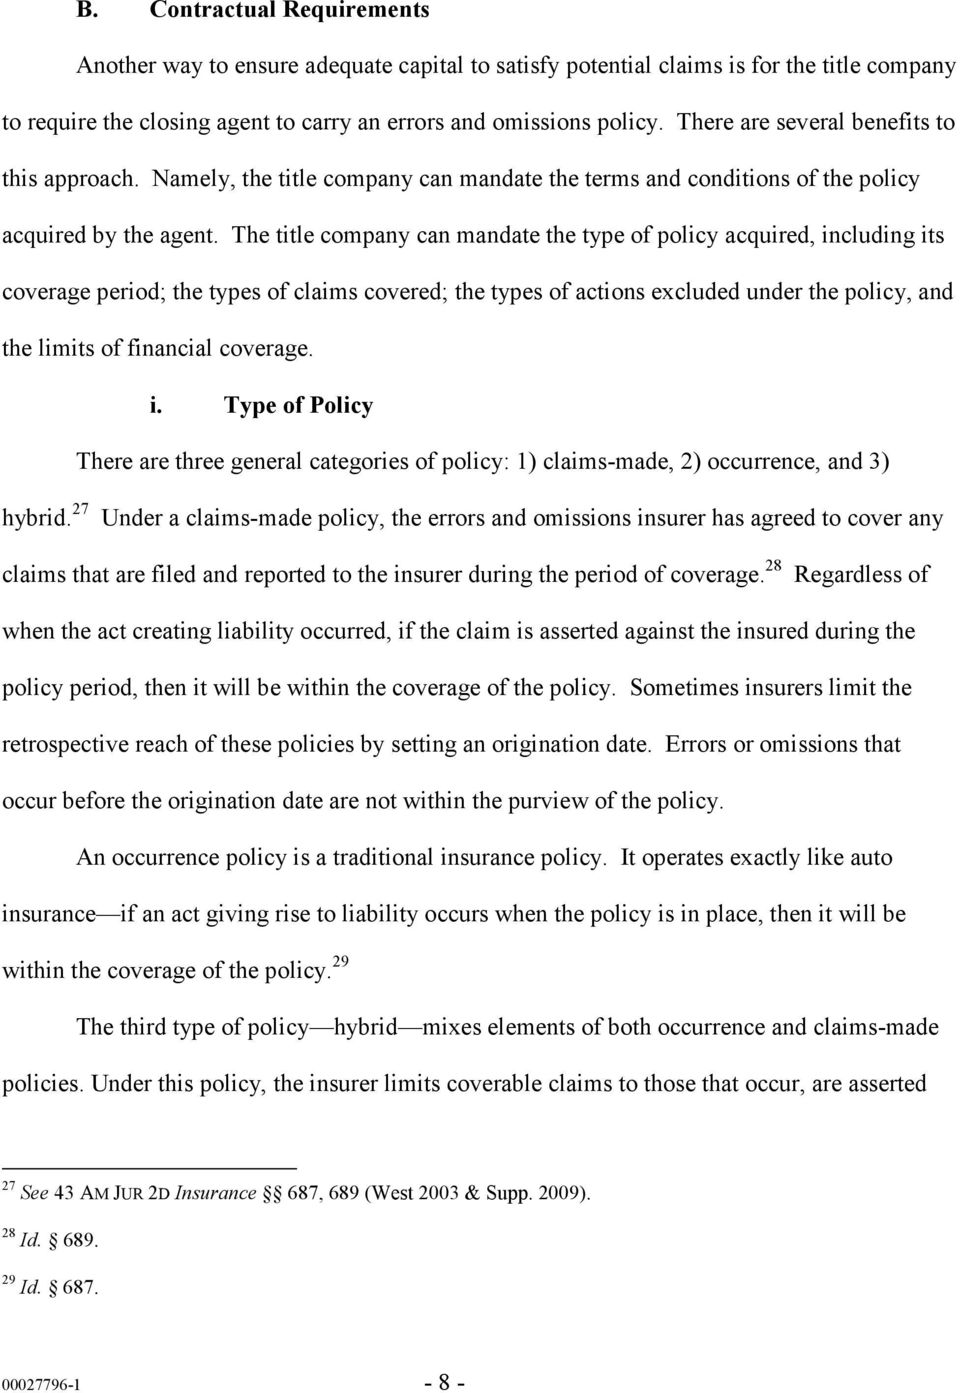 The title company can mandate the type of policy acquired, including its coverage period; the types of claims covered; the types of actions excluded under the policy, and the limits of financial